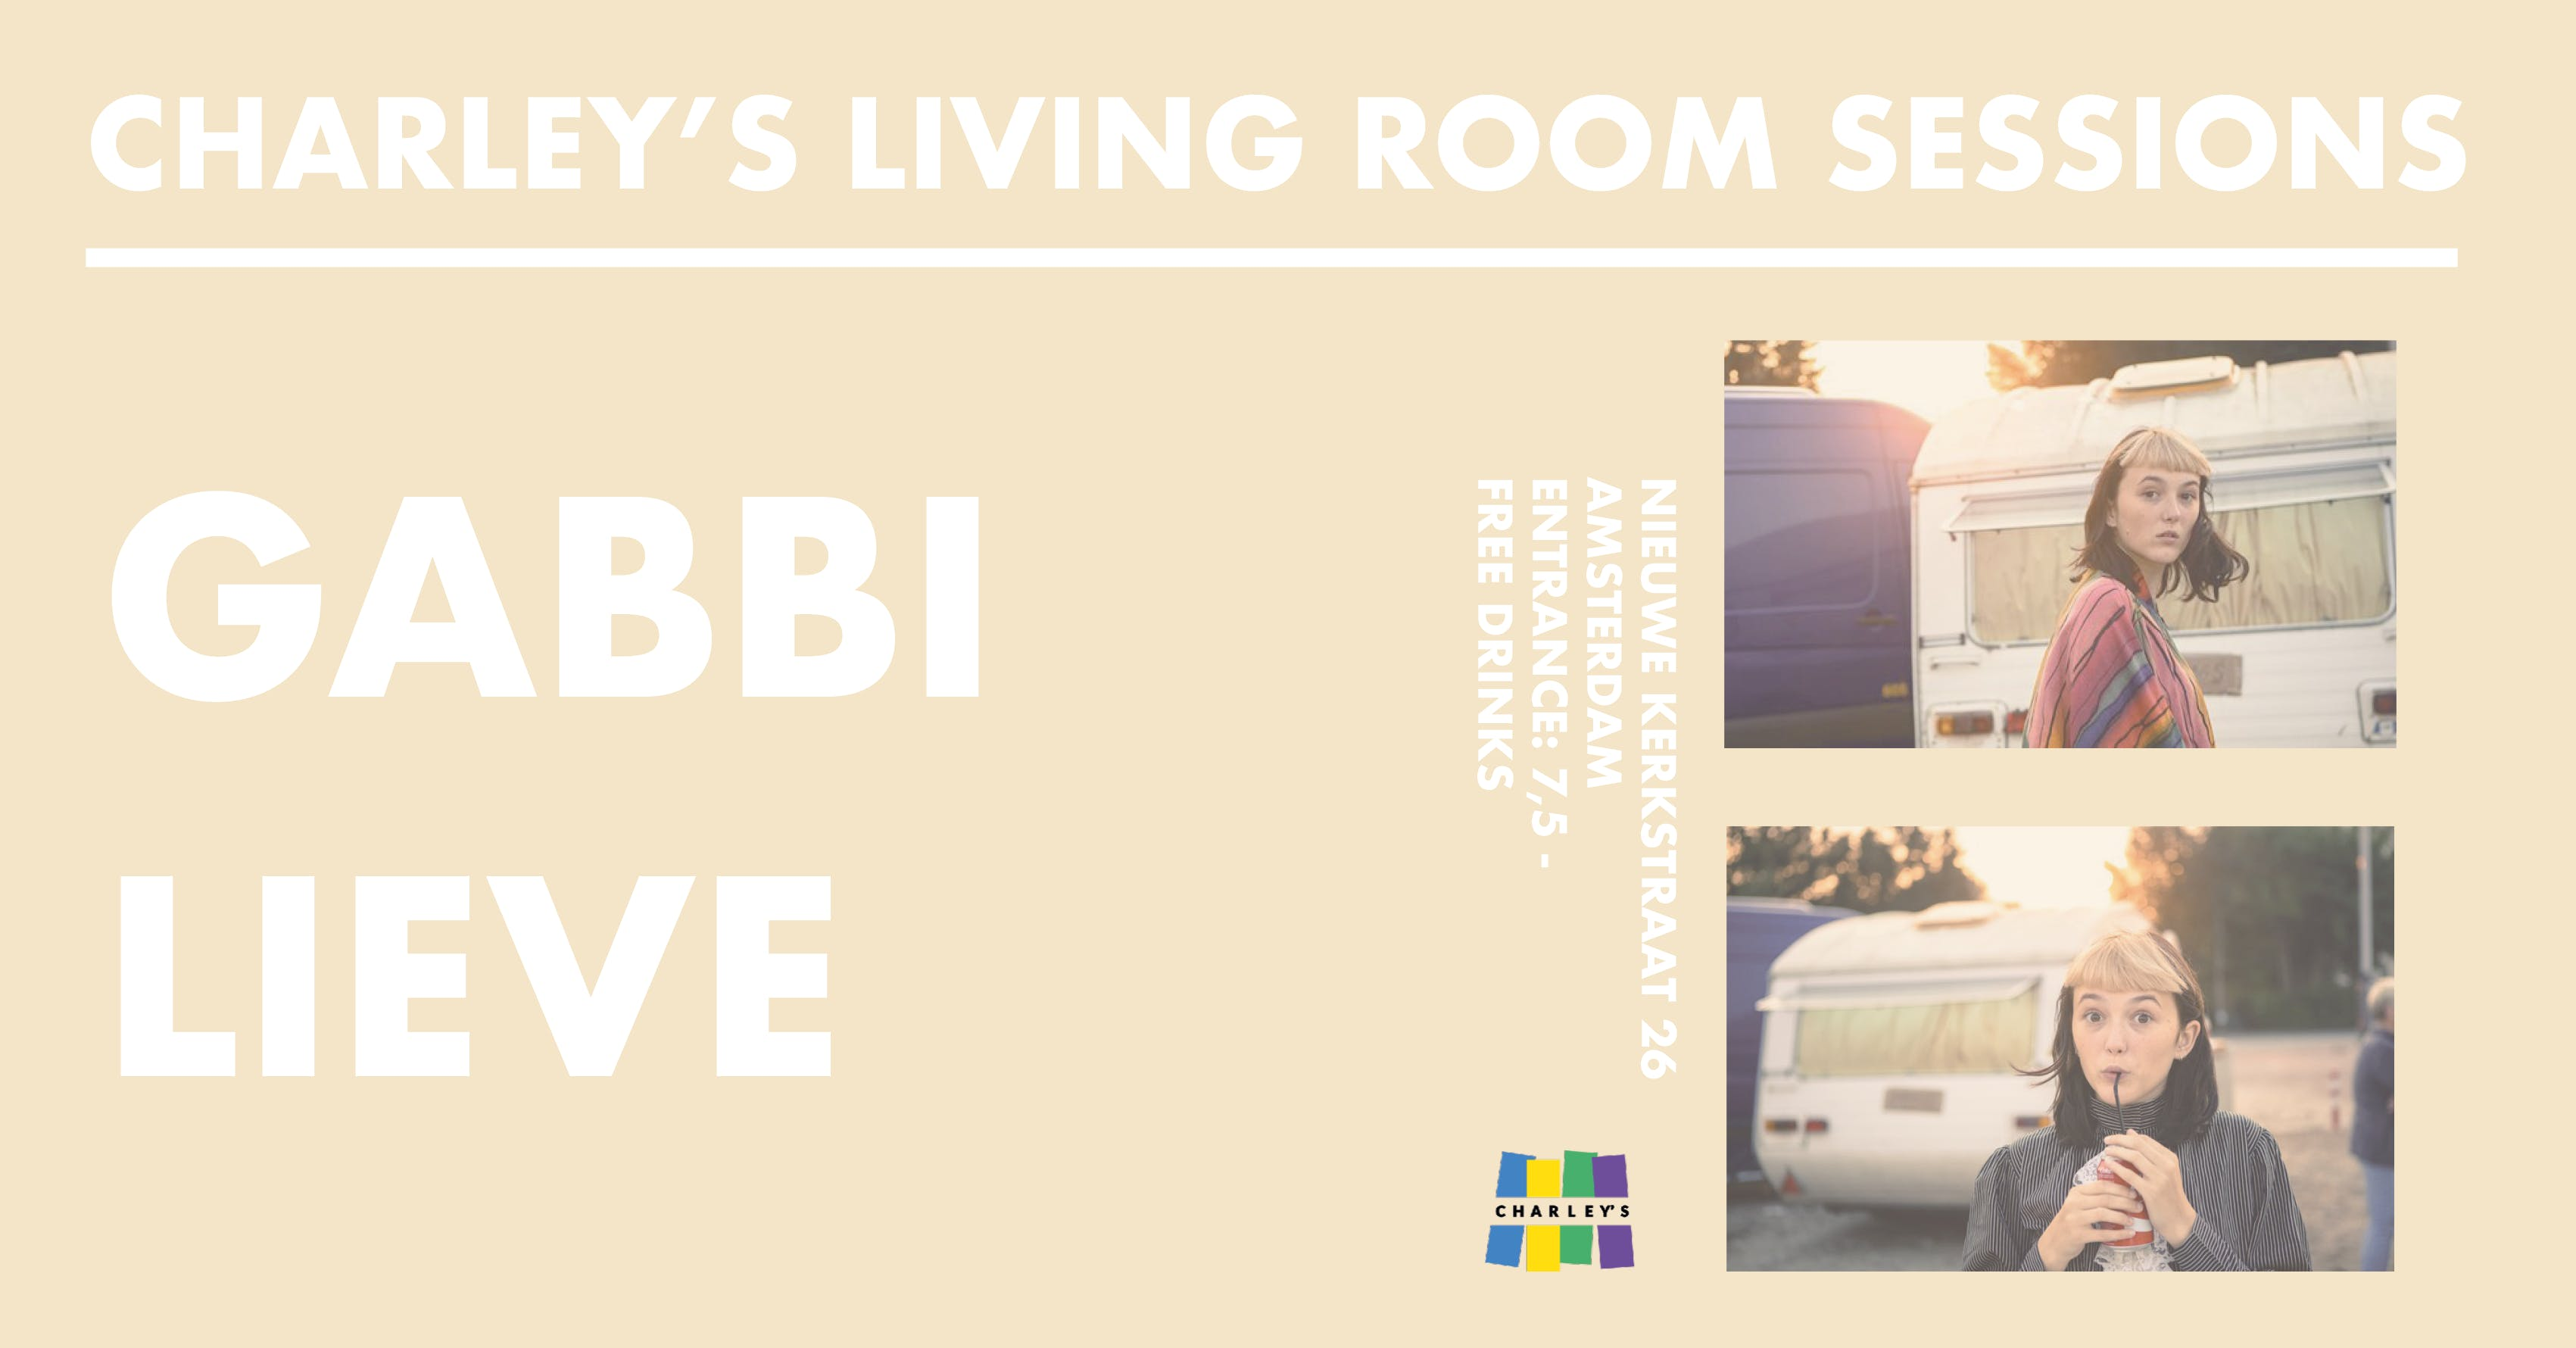 Charley\'s Living Room Sessions: GABBI LIEVE - 8 SEP 2018